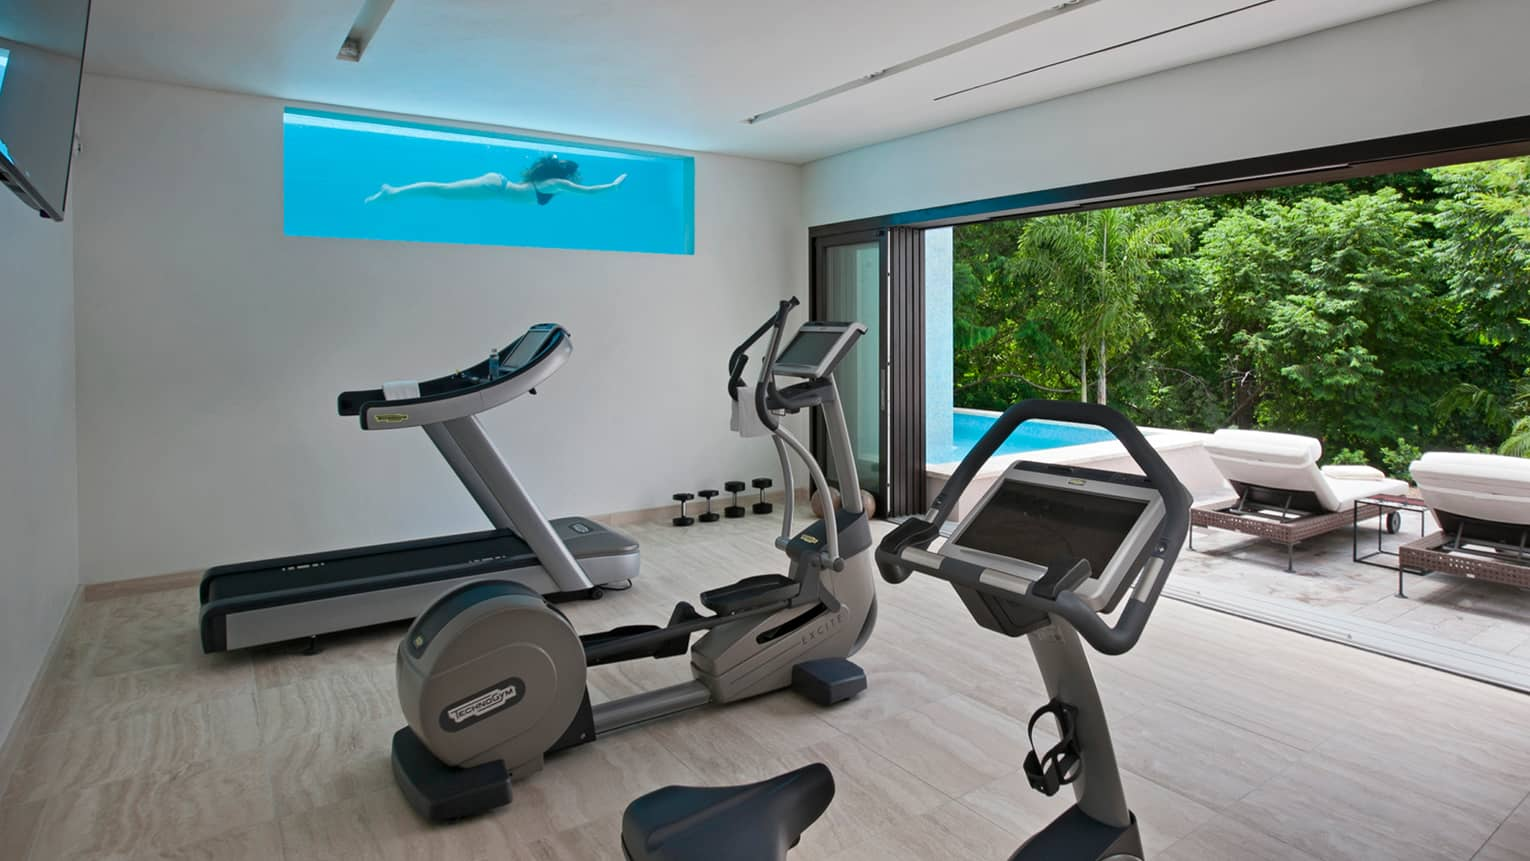 Cardio stationary bike, elliptical treadmill in private fitness room off patio